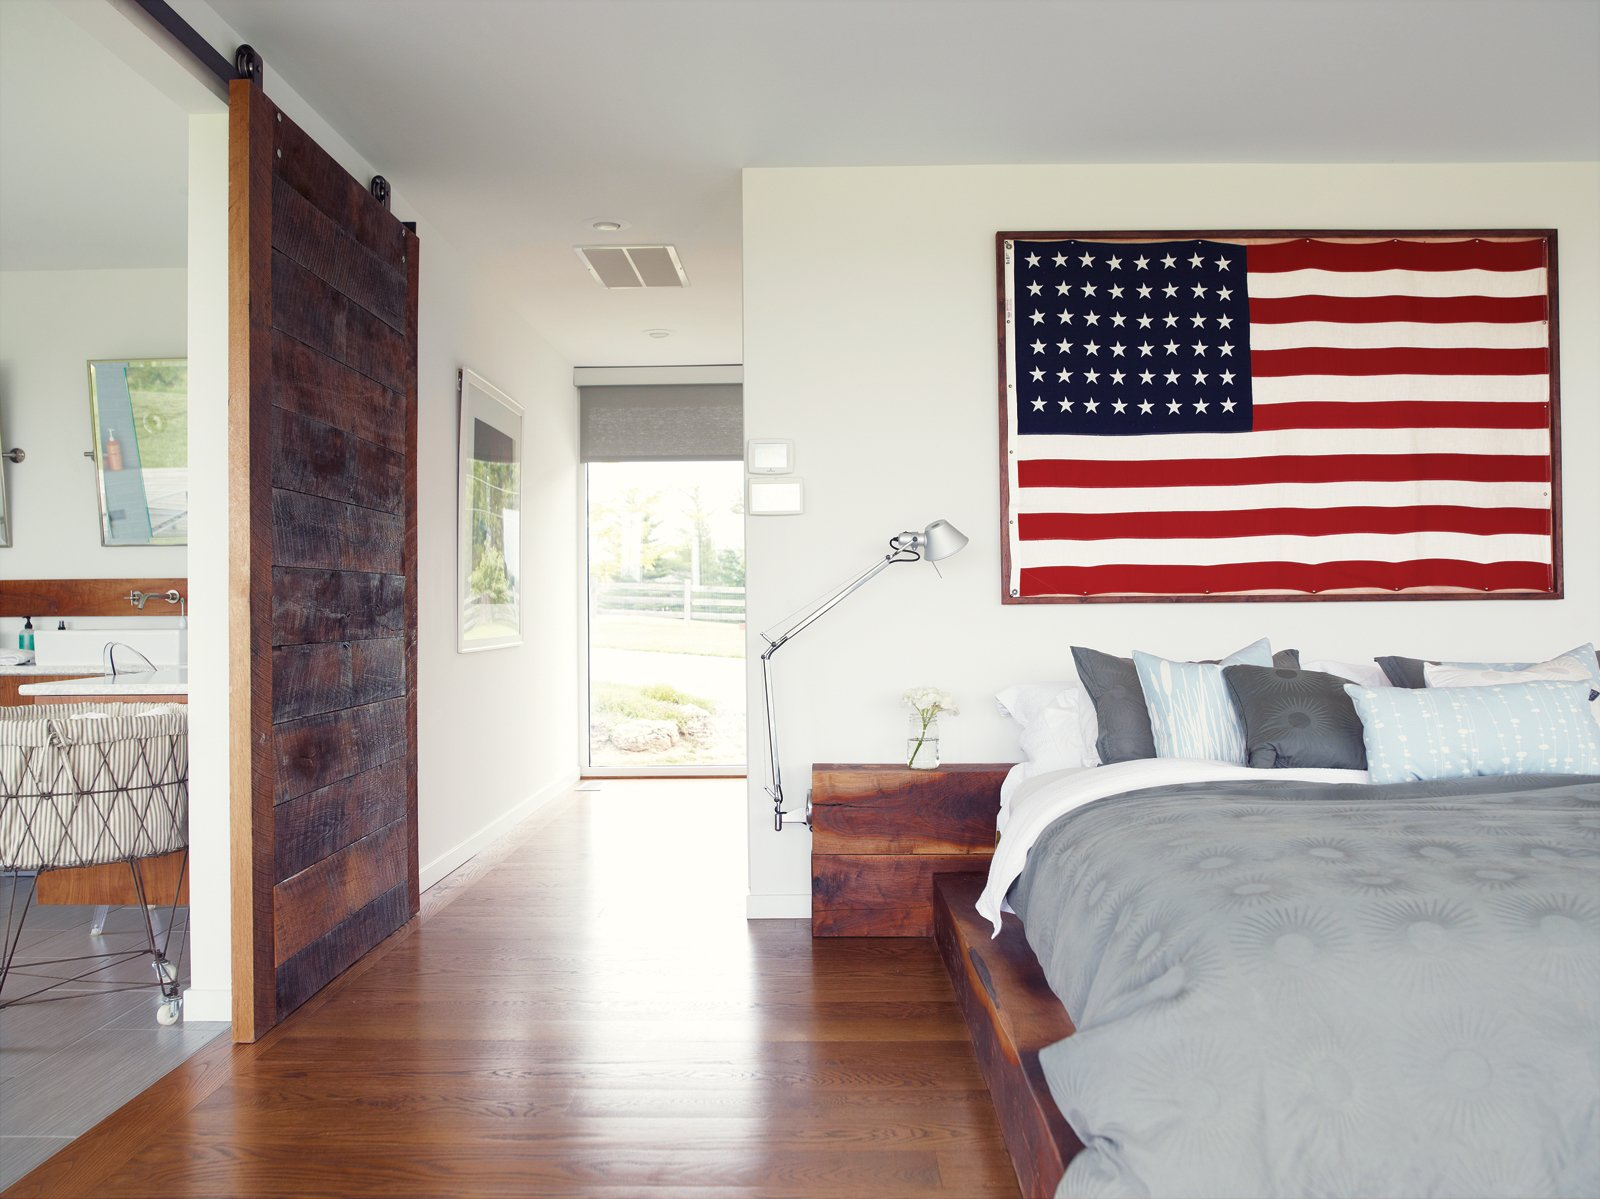 Bedroom, Medium Hardwood Floor, and Bed He built the walnut bed and nightstands in the master bedroom with the help of Hannah's two brothers. One of his clients at his hair salon gave him the American flag; the bedside lights are Tolomeo classic wall lamps by Artemide. The bed linens are   from Inhabit. A sliding barn door rolls sideways to reveal the bathroom.  Week in Review: 7 Great Reads You May Have Missed June 1, 2013 by Megan Hamaker from Material Focus: Custom Walnut Designs